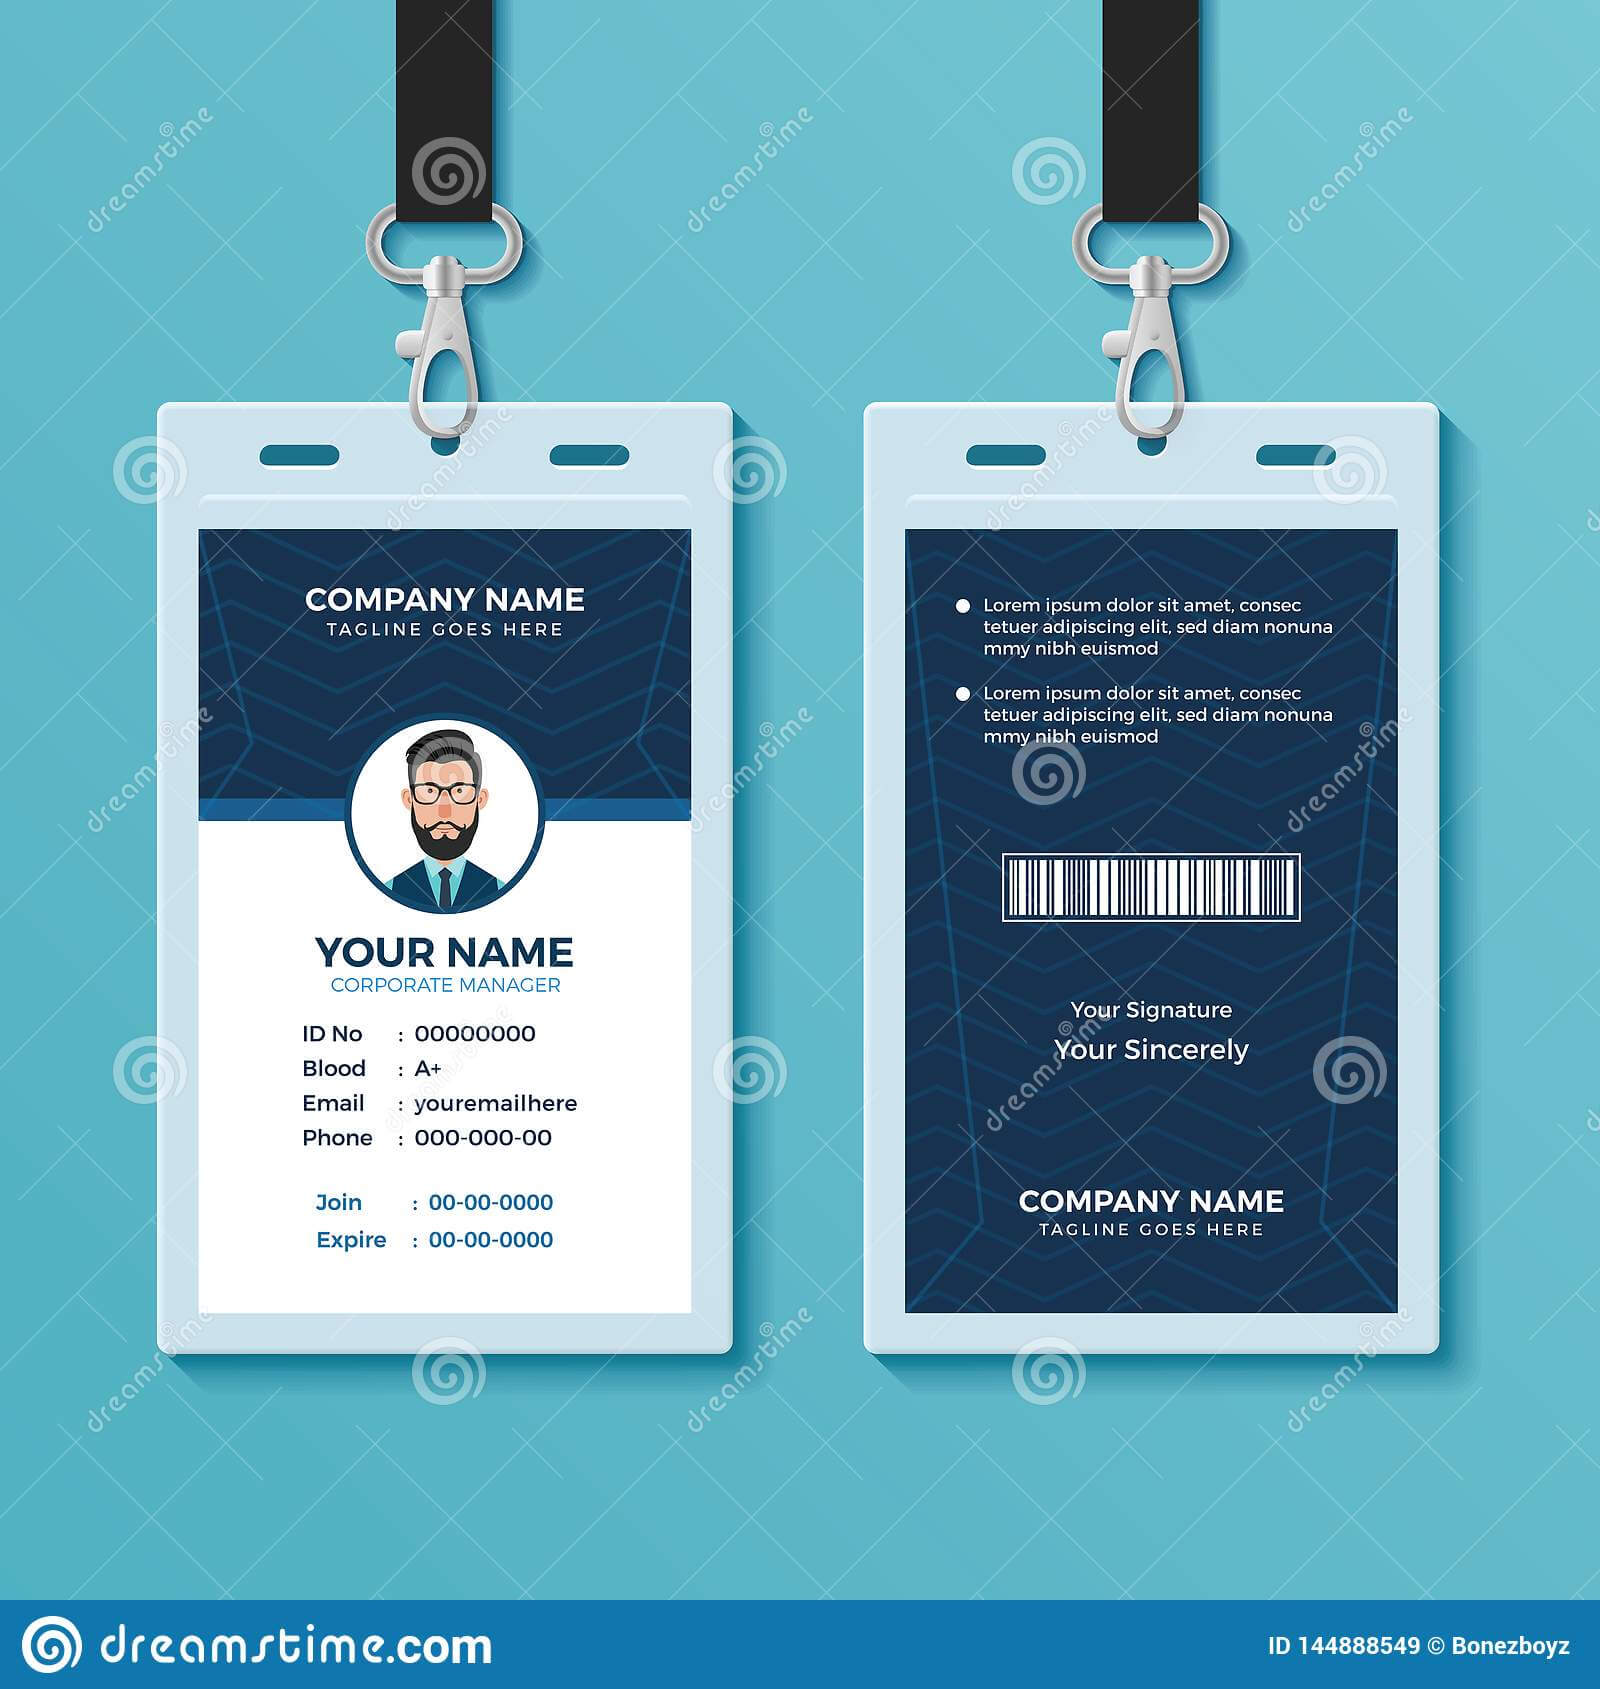 Modern And Clean Id Card Design Template Stock Vector With Conference Id Card Template